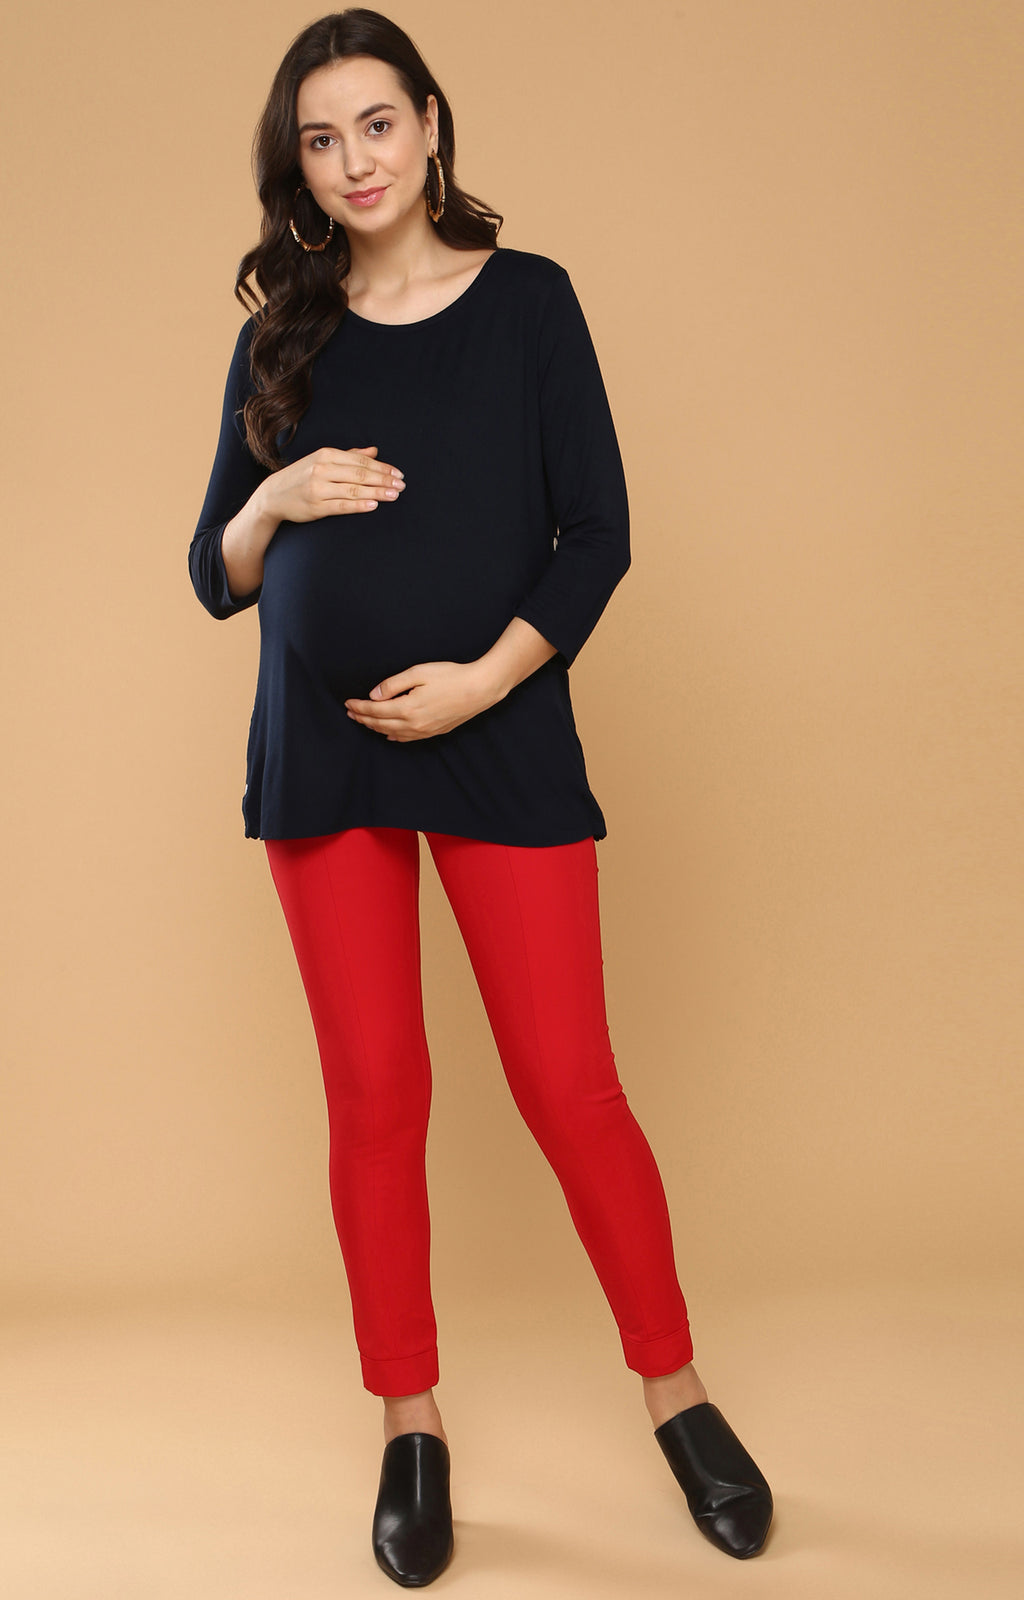 Side Snap Nursing Top - momsoon maternity fashion wear